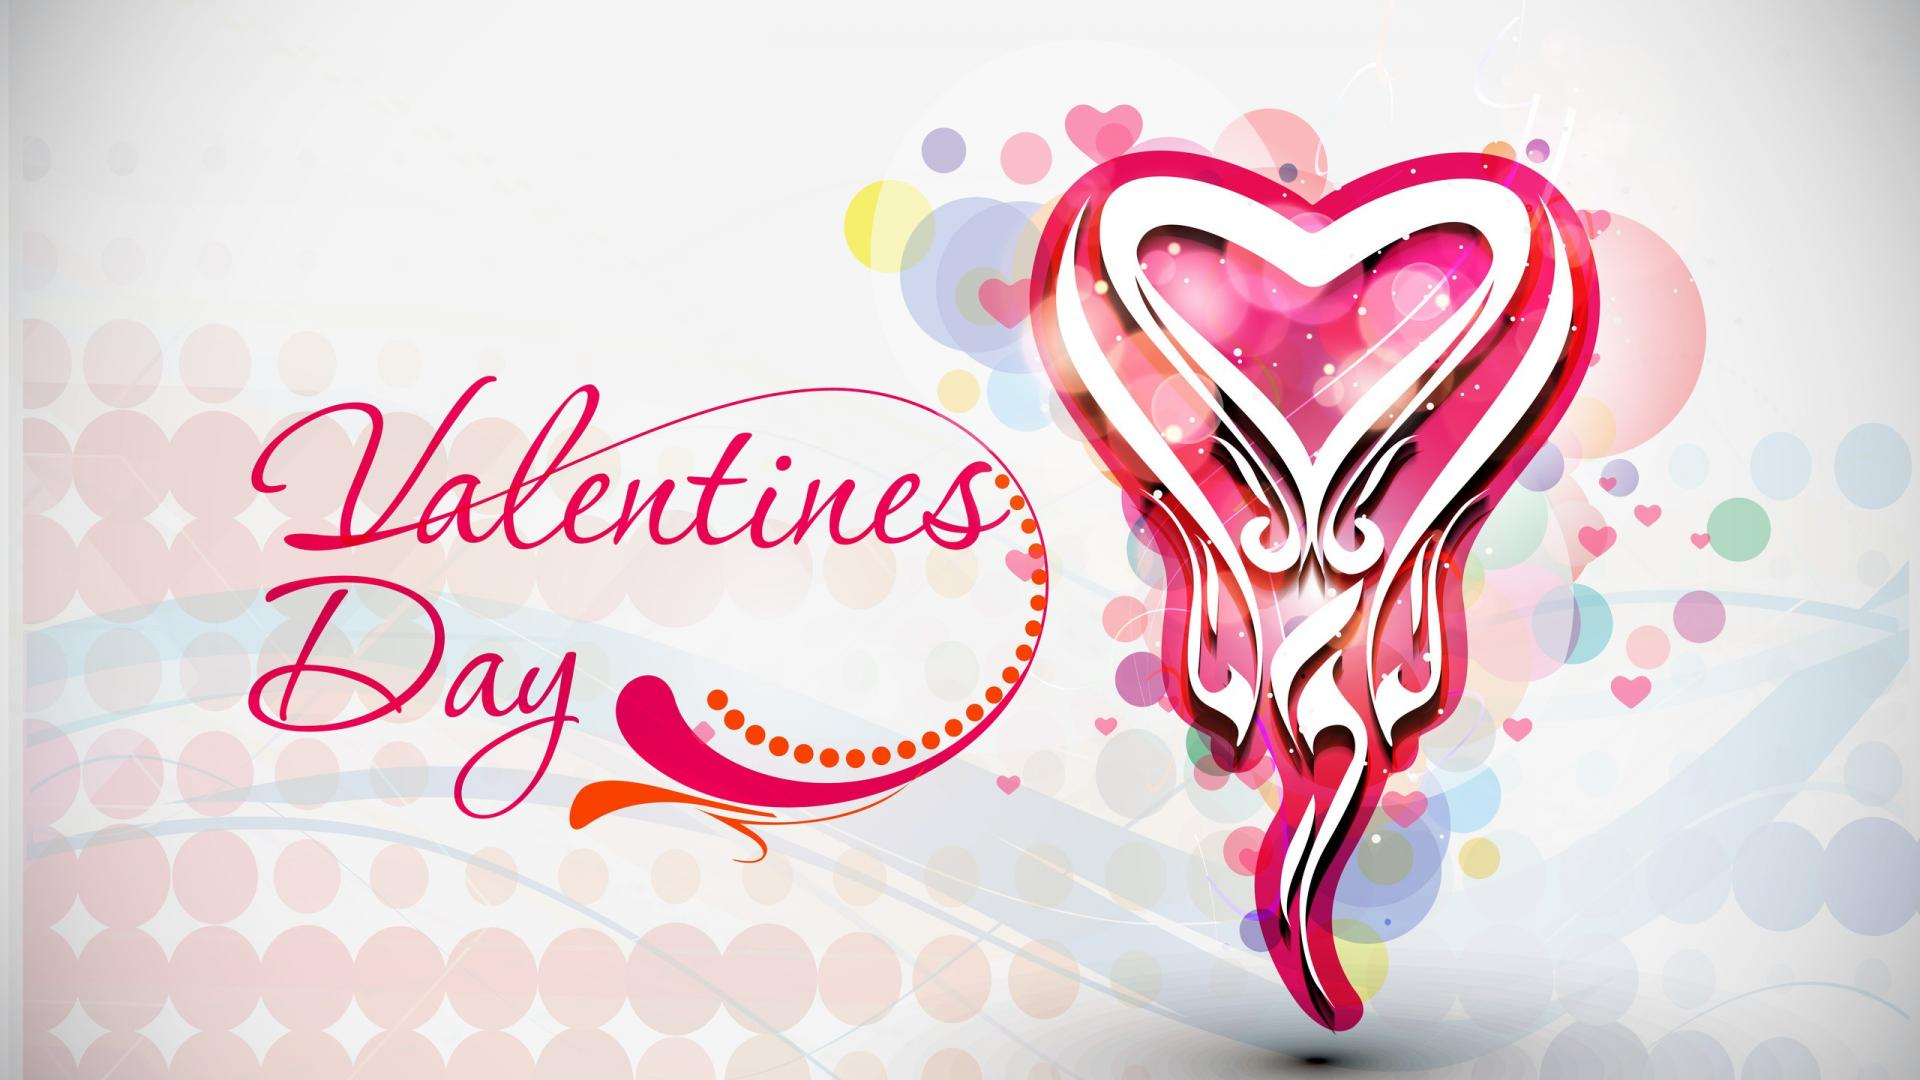 free wallpaper valentines day - wallpapersafari